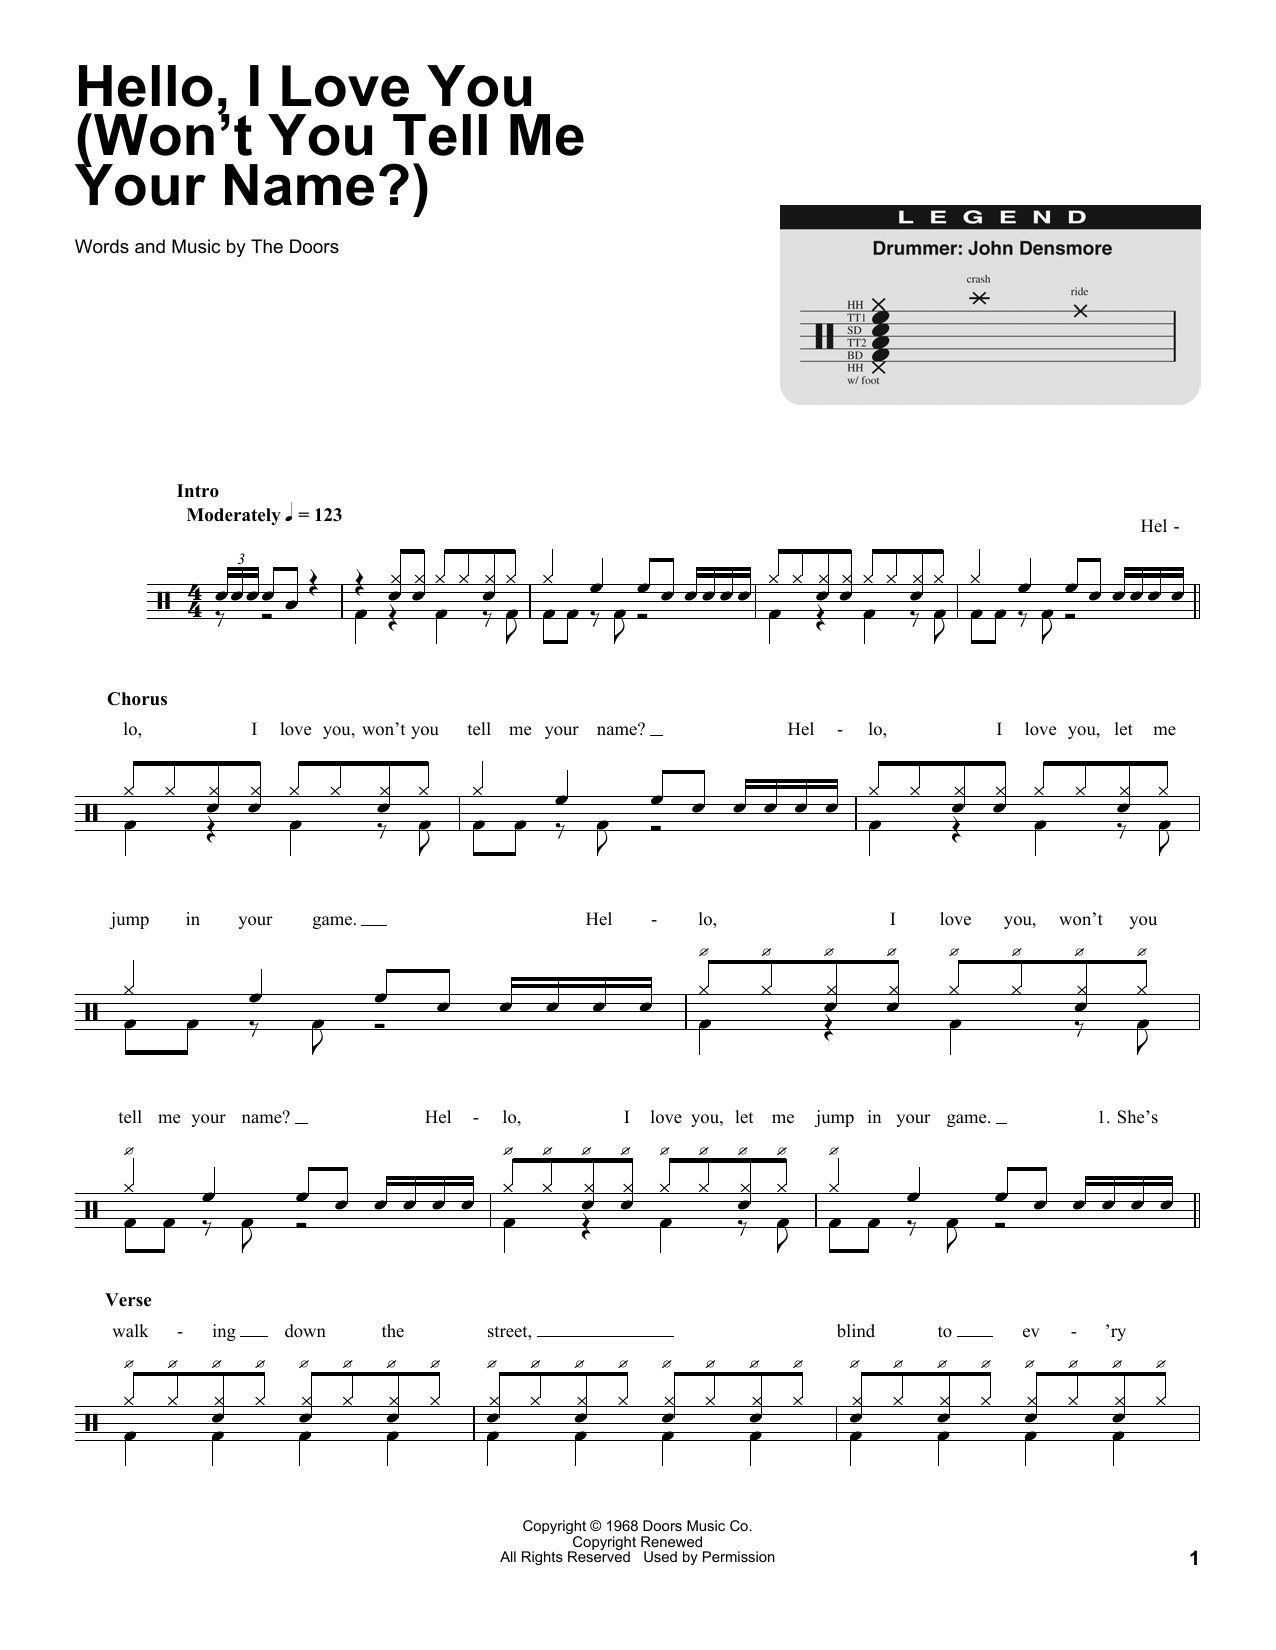 Hello, I Love You (Won't You Tell Me Your Name?) Sheet Music